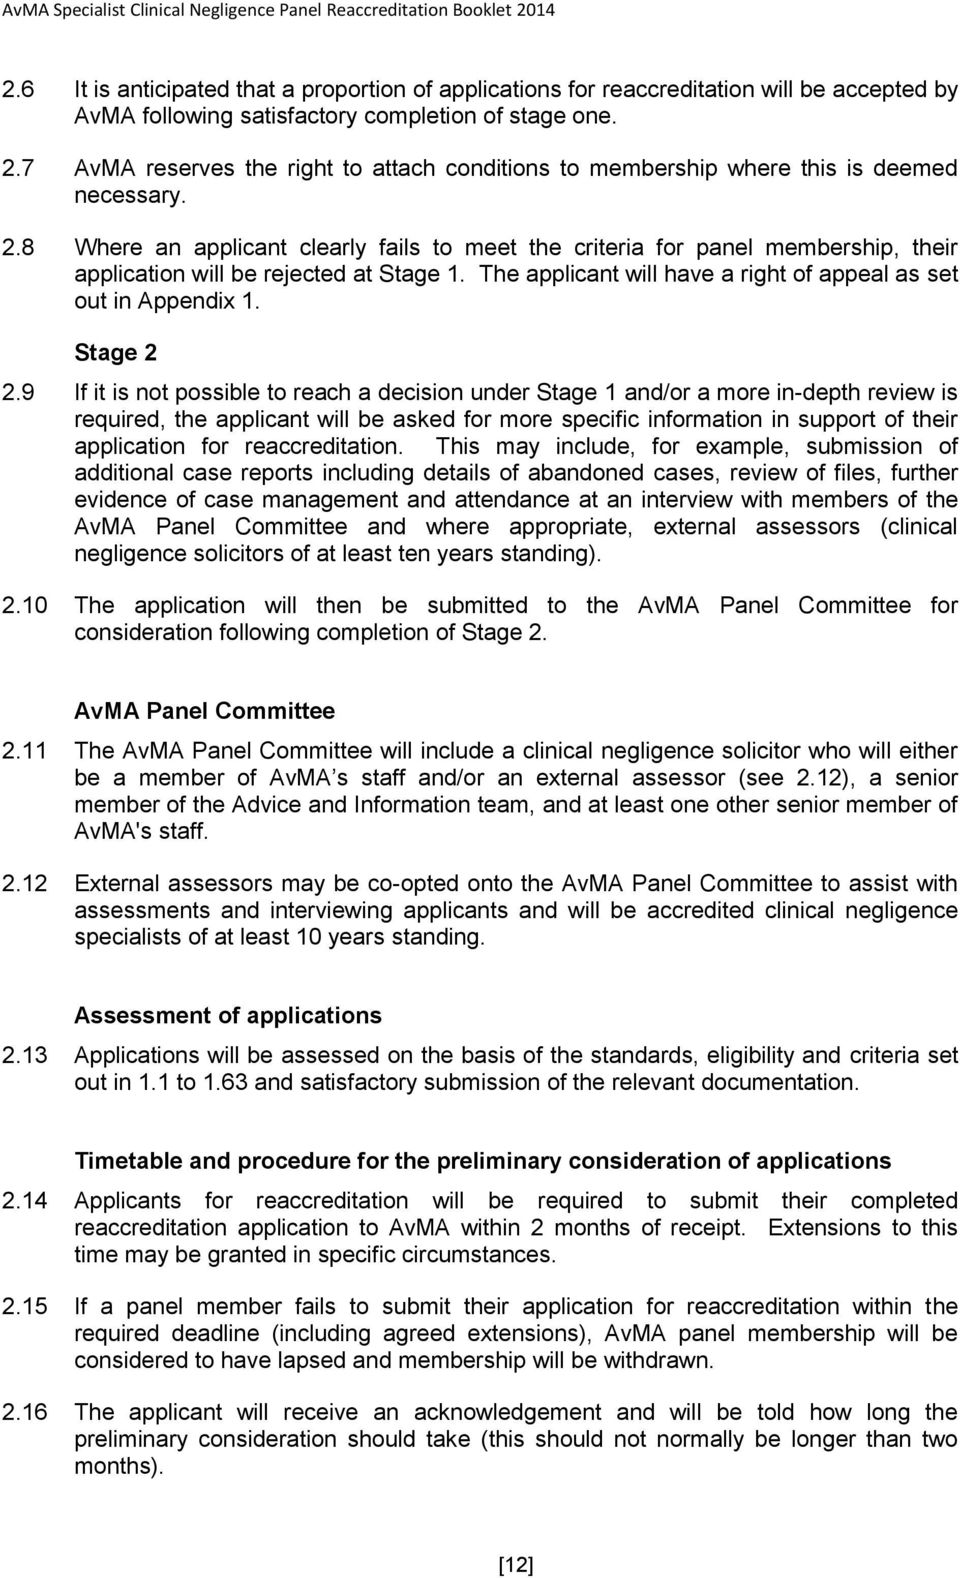 8 Where an applicant clearly fails to meet the criteria for panel membership, their application will be rejected at Stage 1. The applicant will have a right of appeal as set out in Appendix 1.